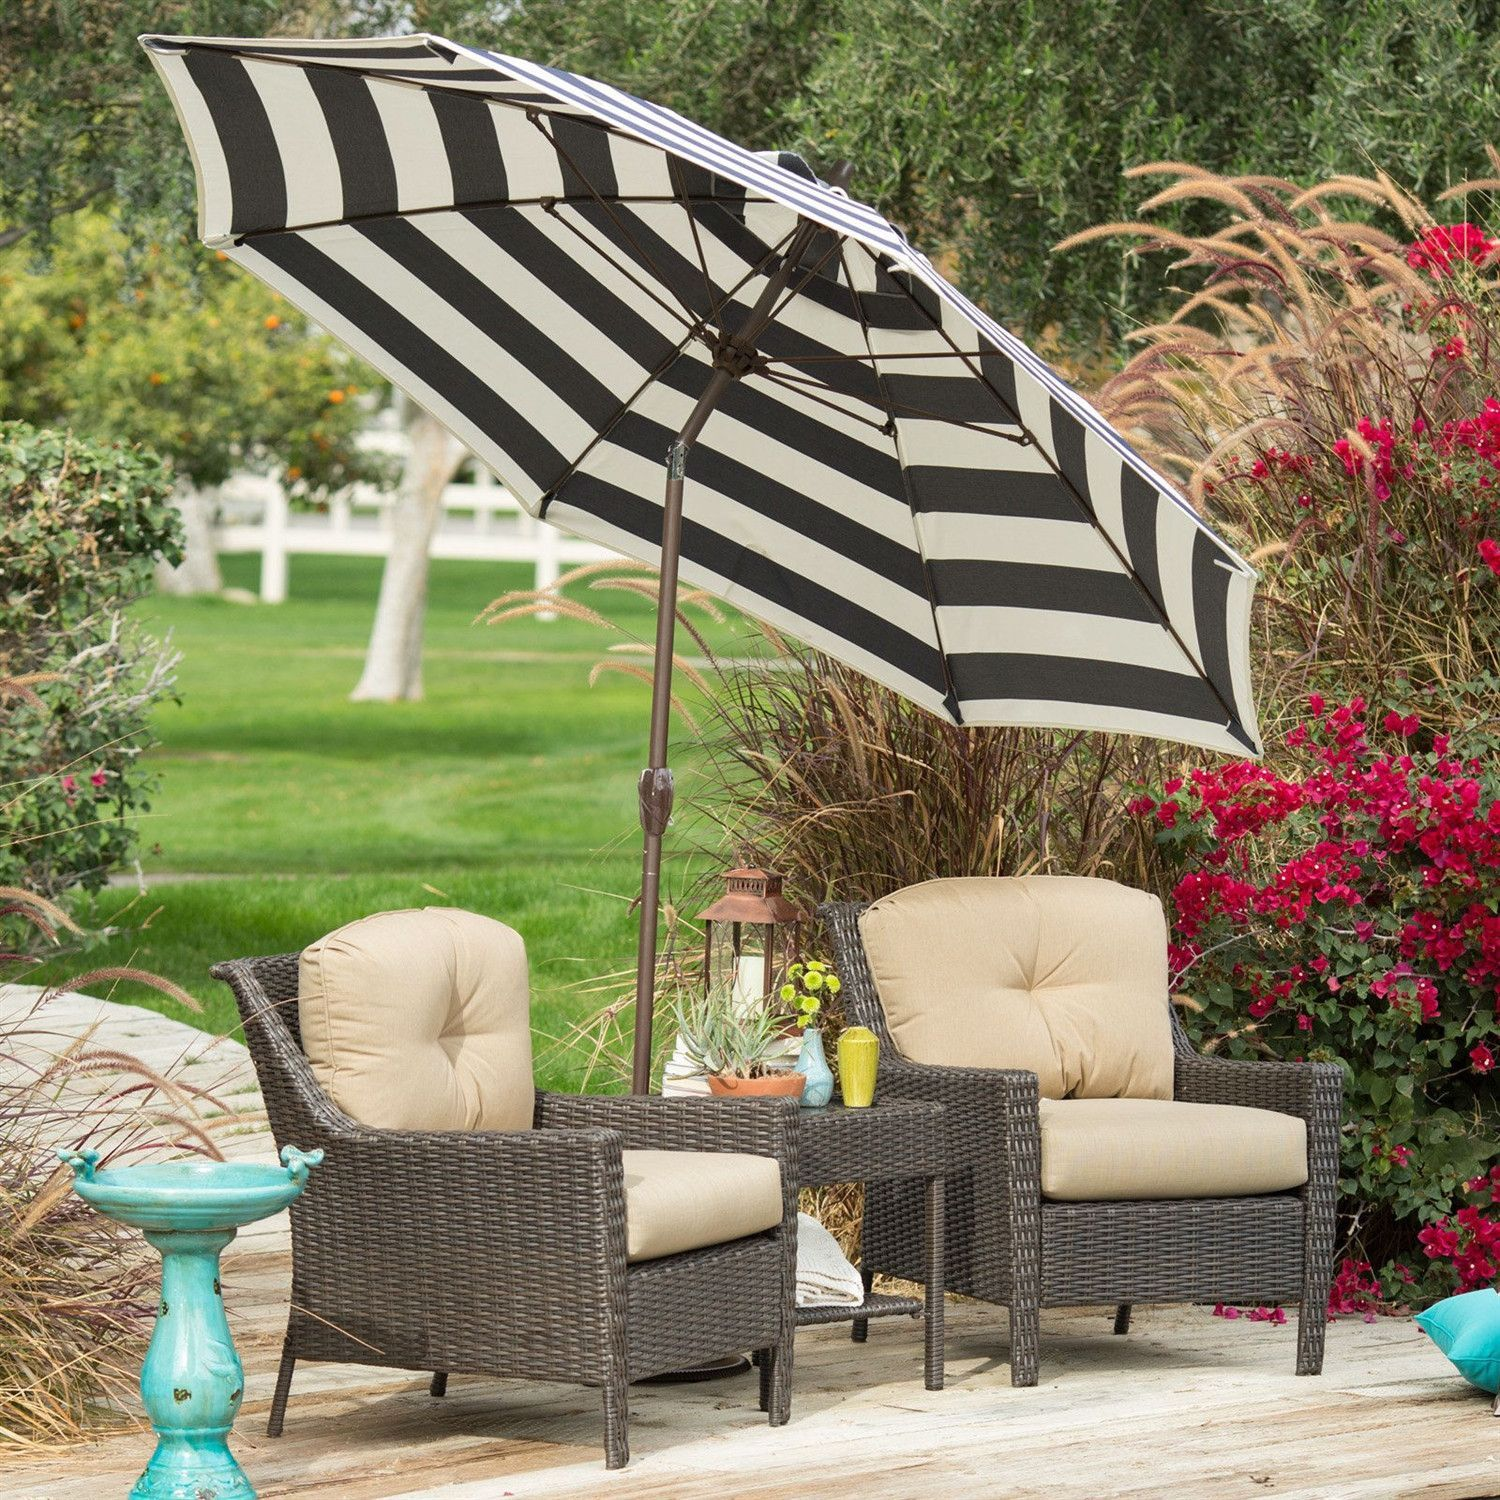 Stylish 9 Ft Market Patio Umbrella with Crank and Tilt in Navy and